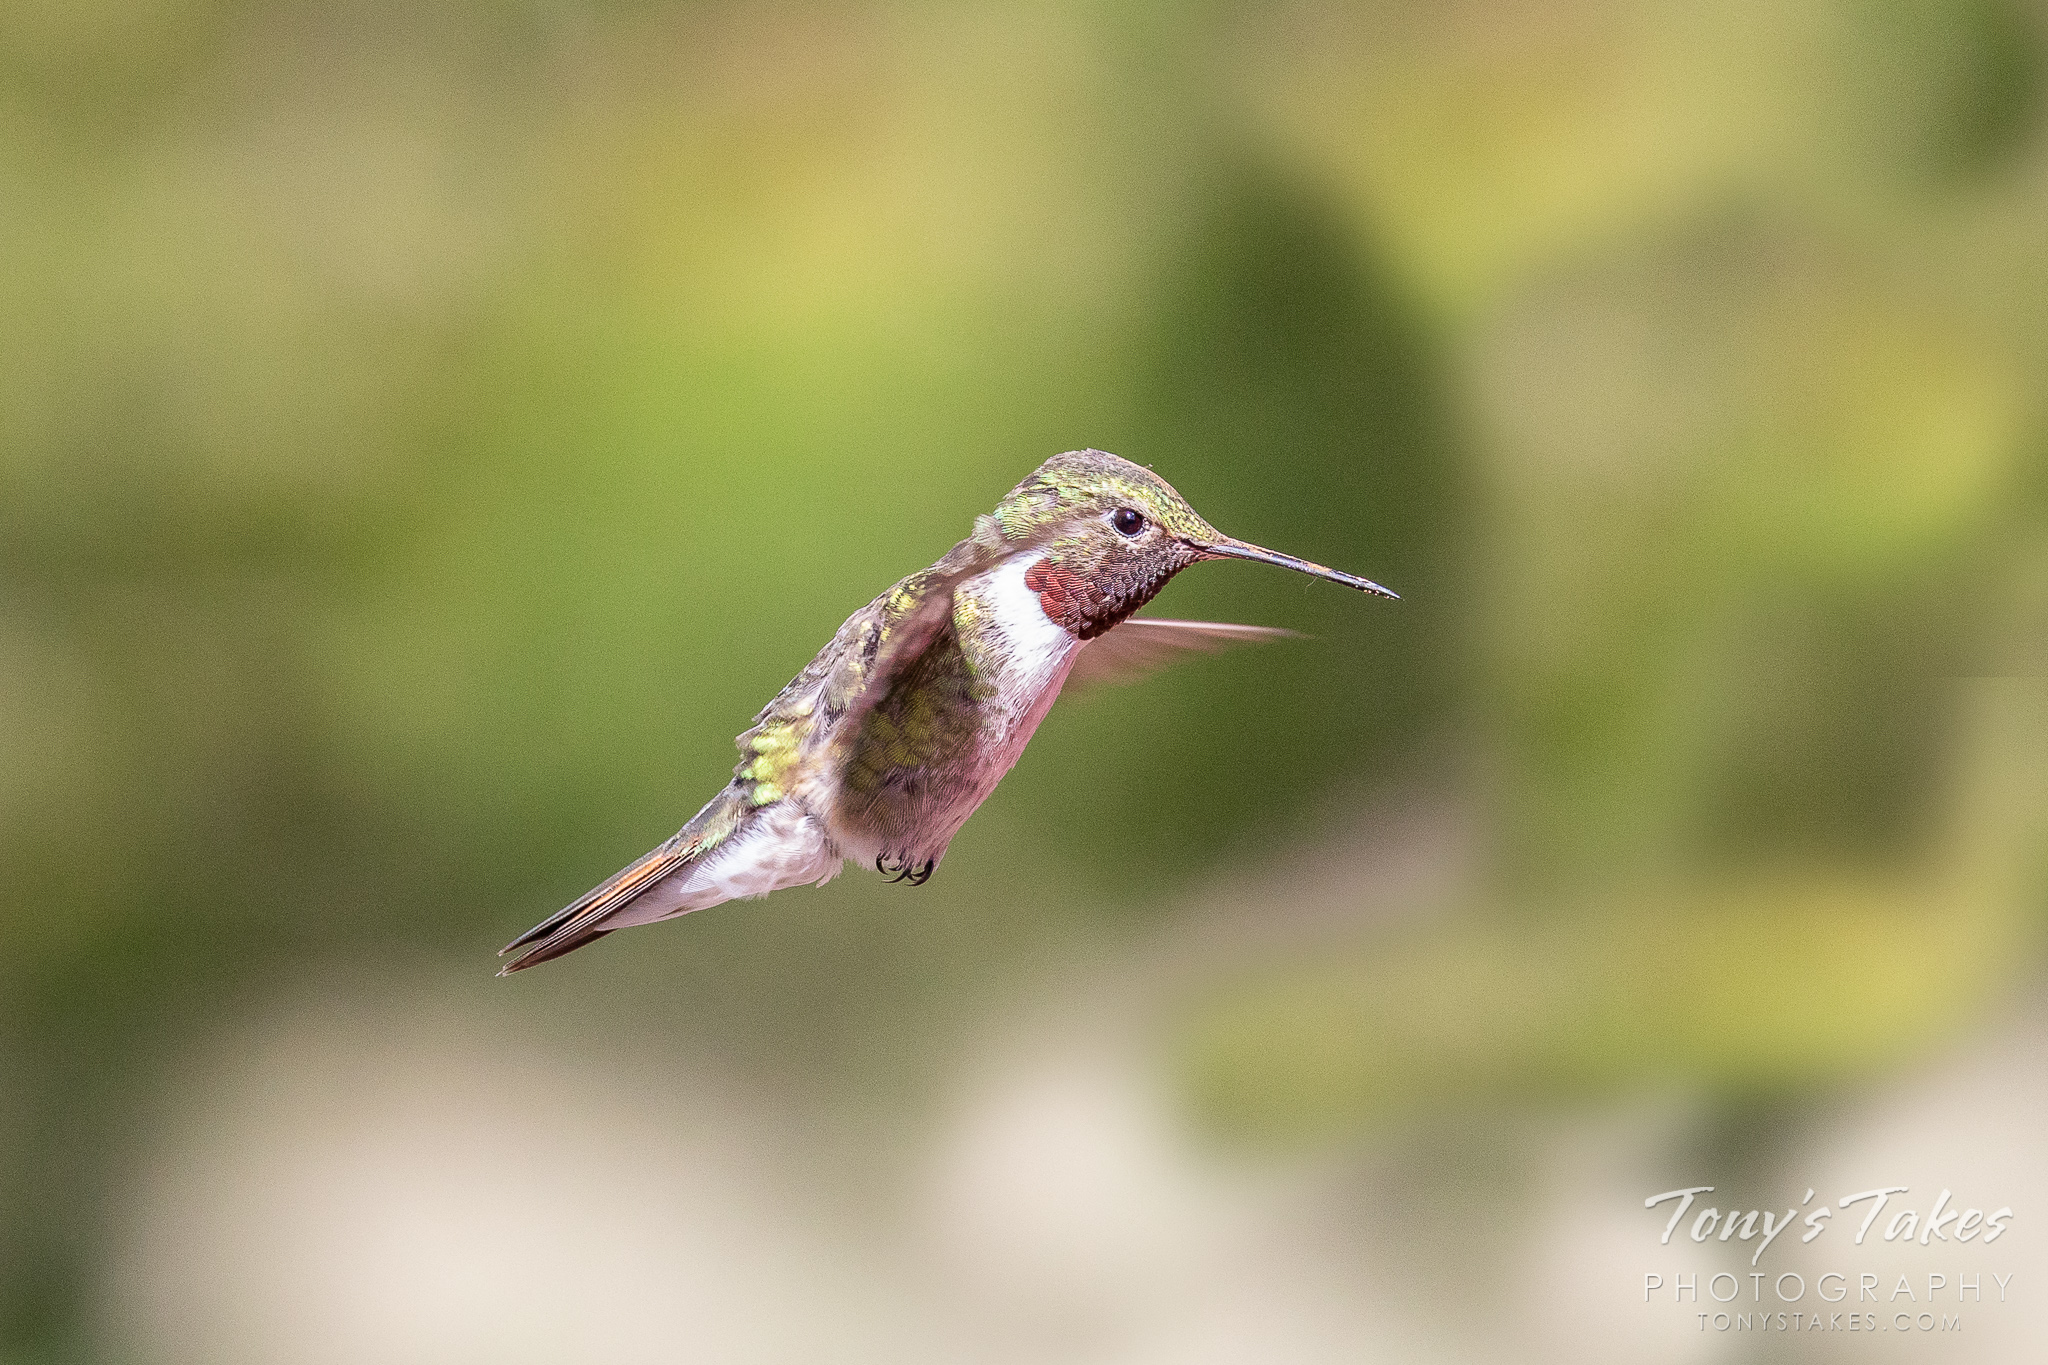 Hummingbird focused on the food